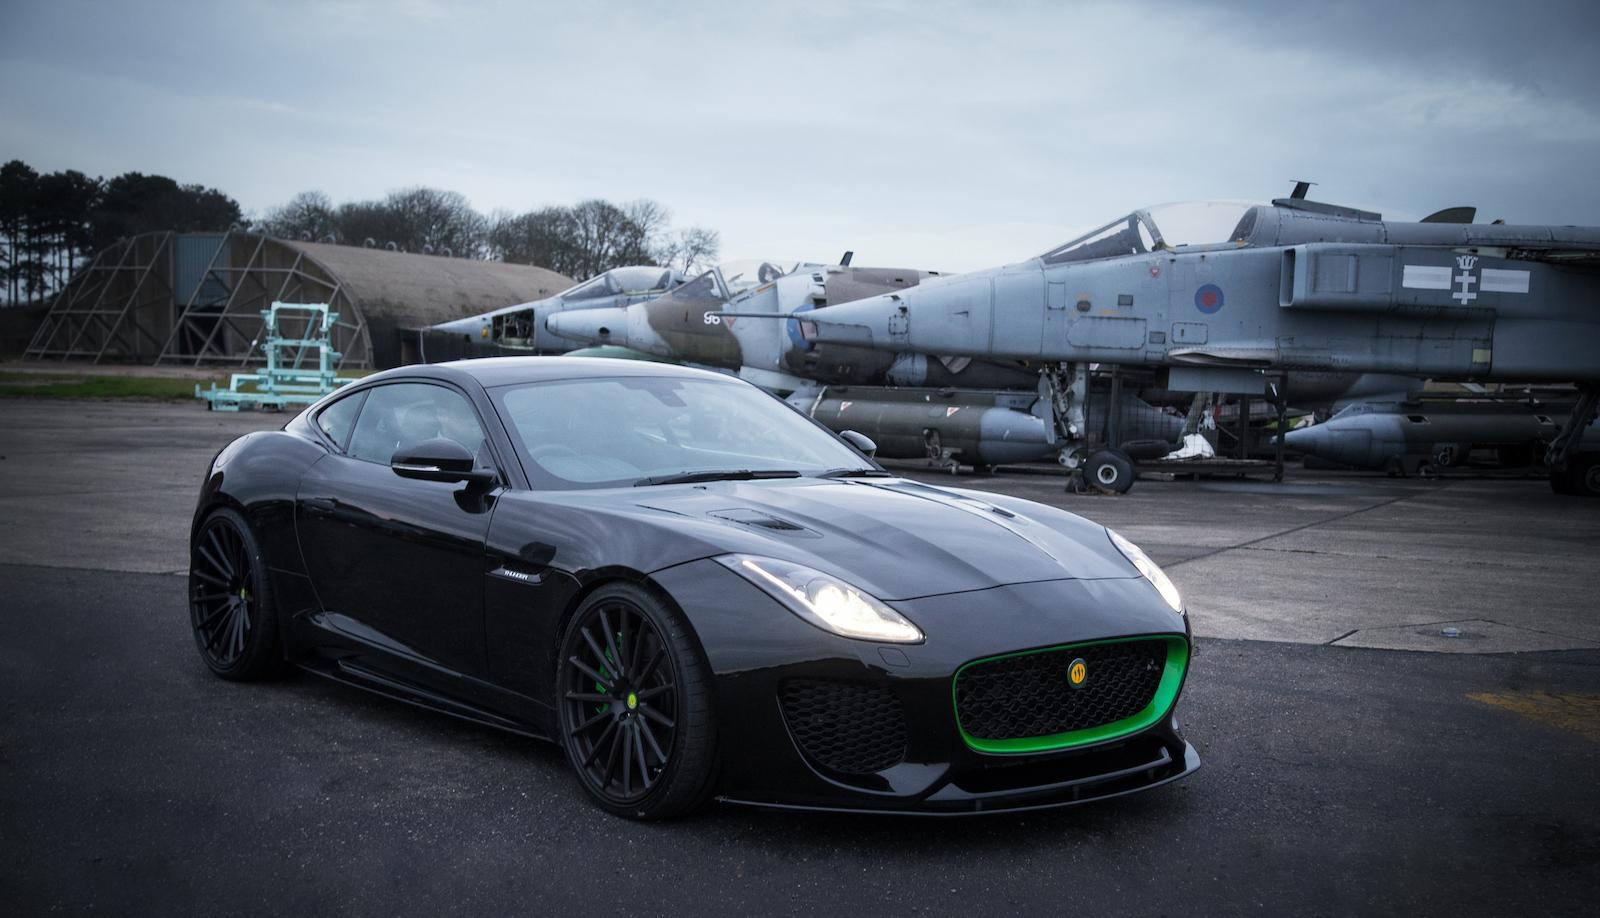 Lister to launch its first modern road car in 25 years